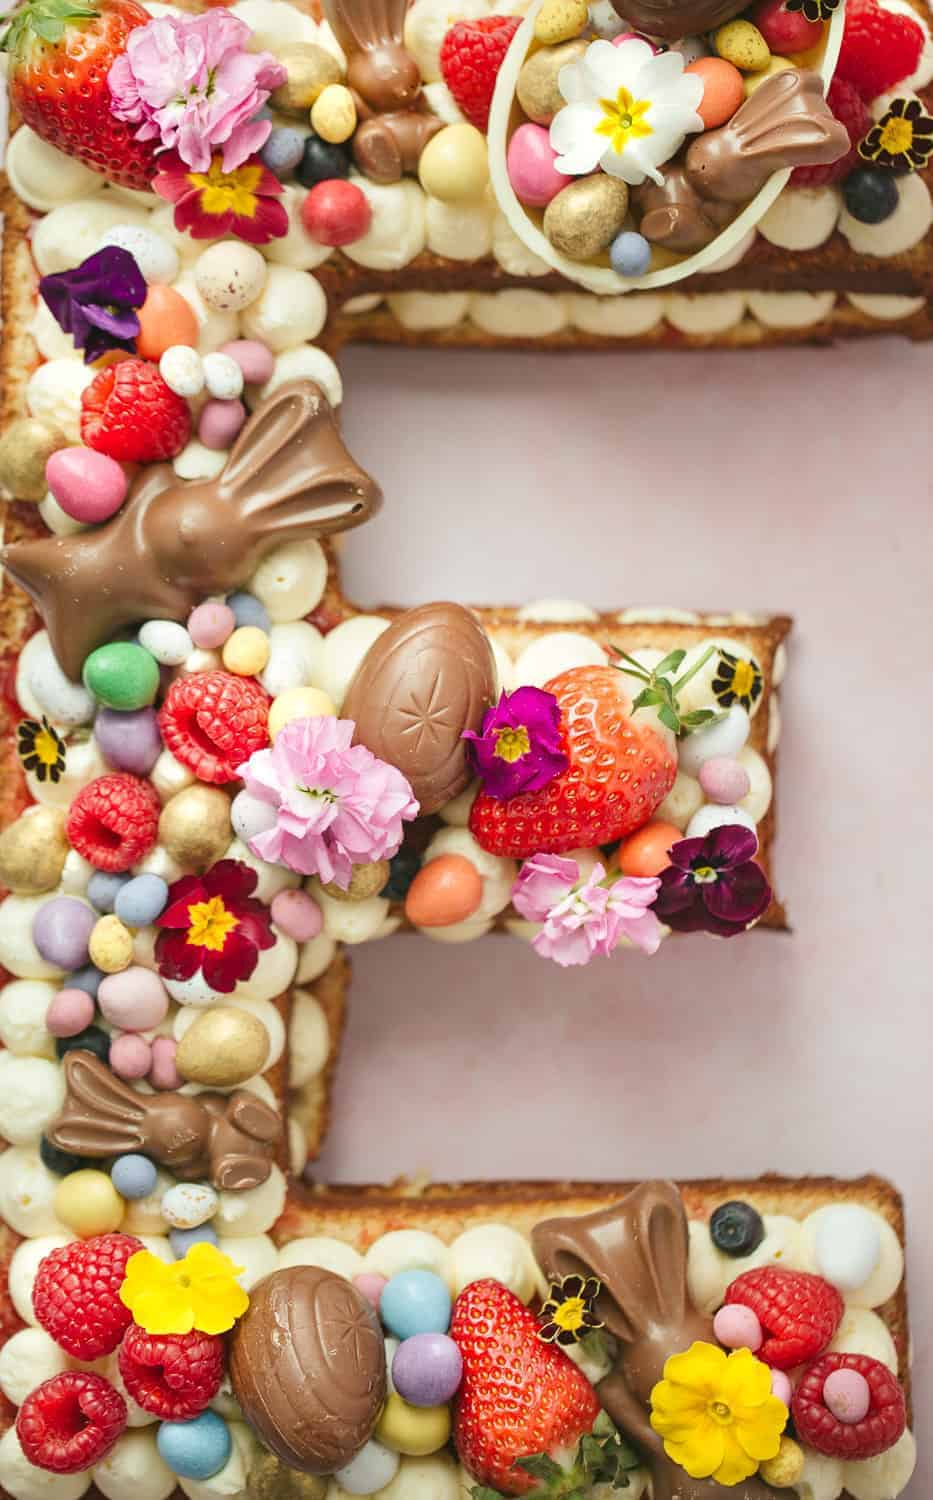 Letter cake in the shape of an E topped with Easter chocolate